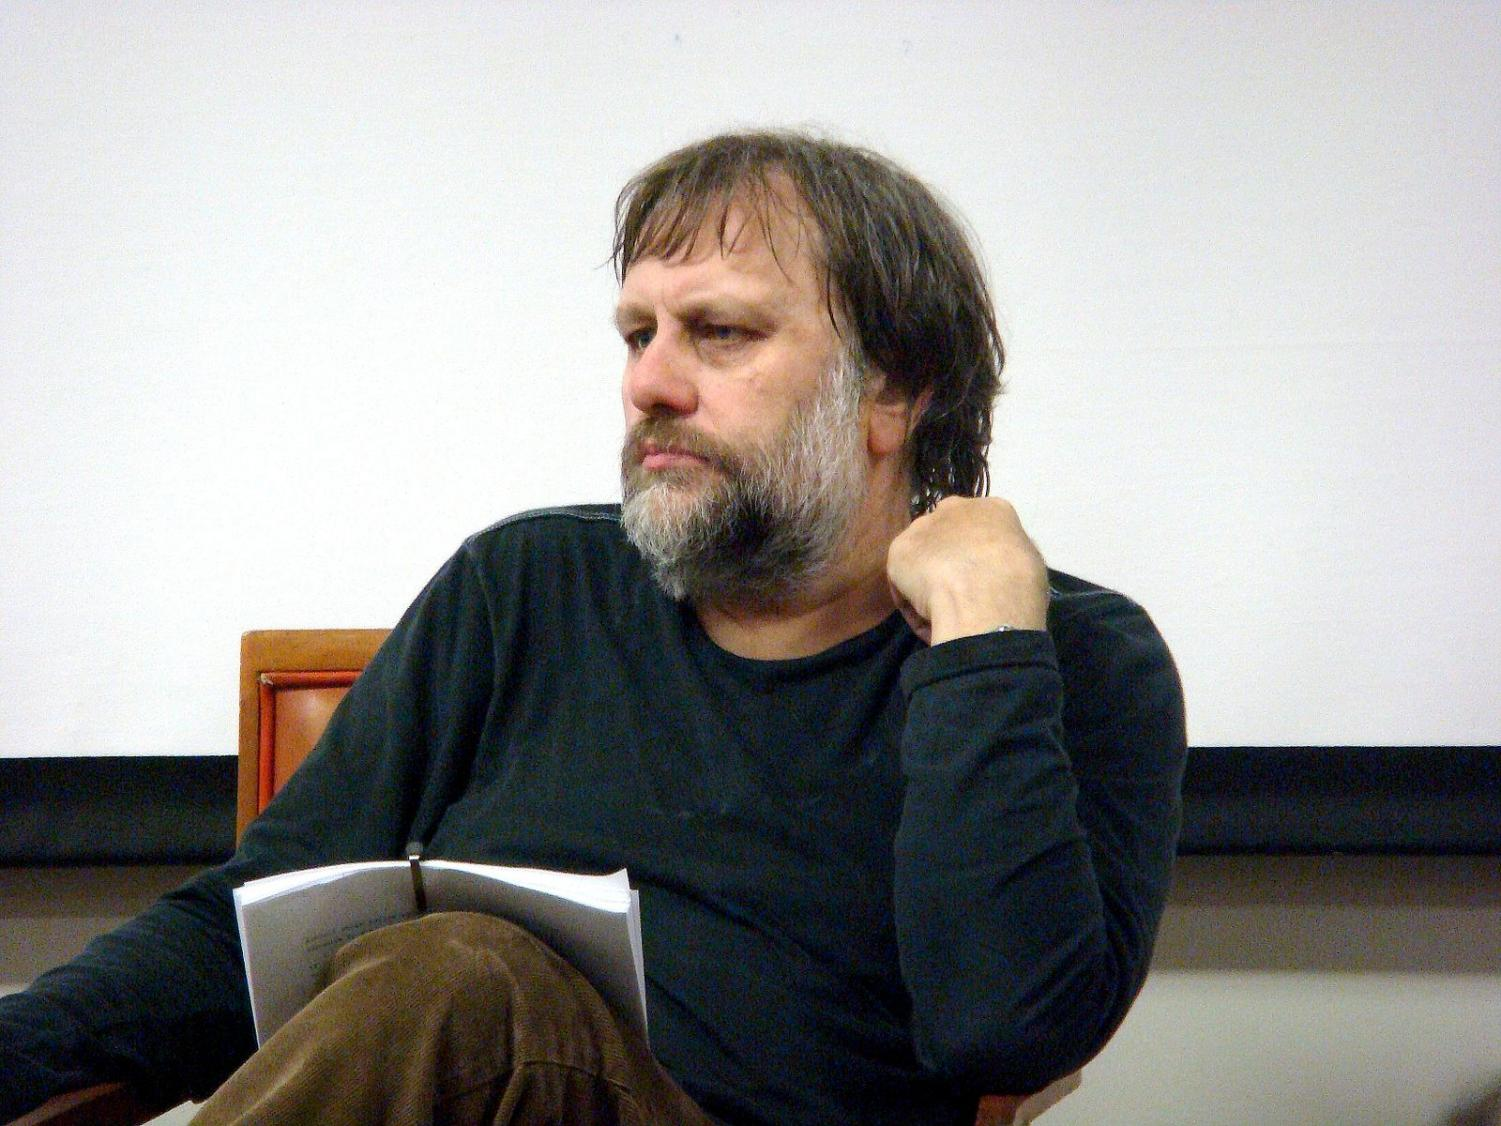 Slovenian philosopher Slavoj Zizek is pictured in Liverpool. Zizek and psychologist Jordan Peterson debated in Canada on April 19 at a sold-out event.